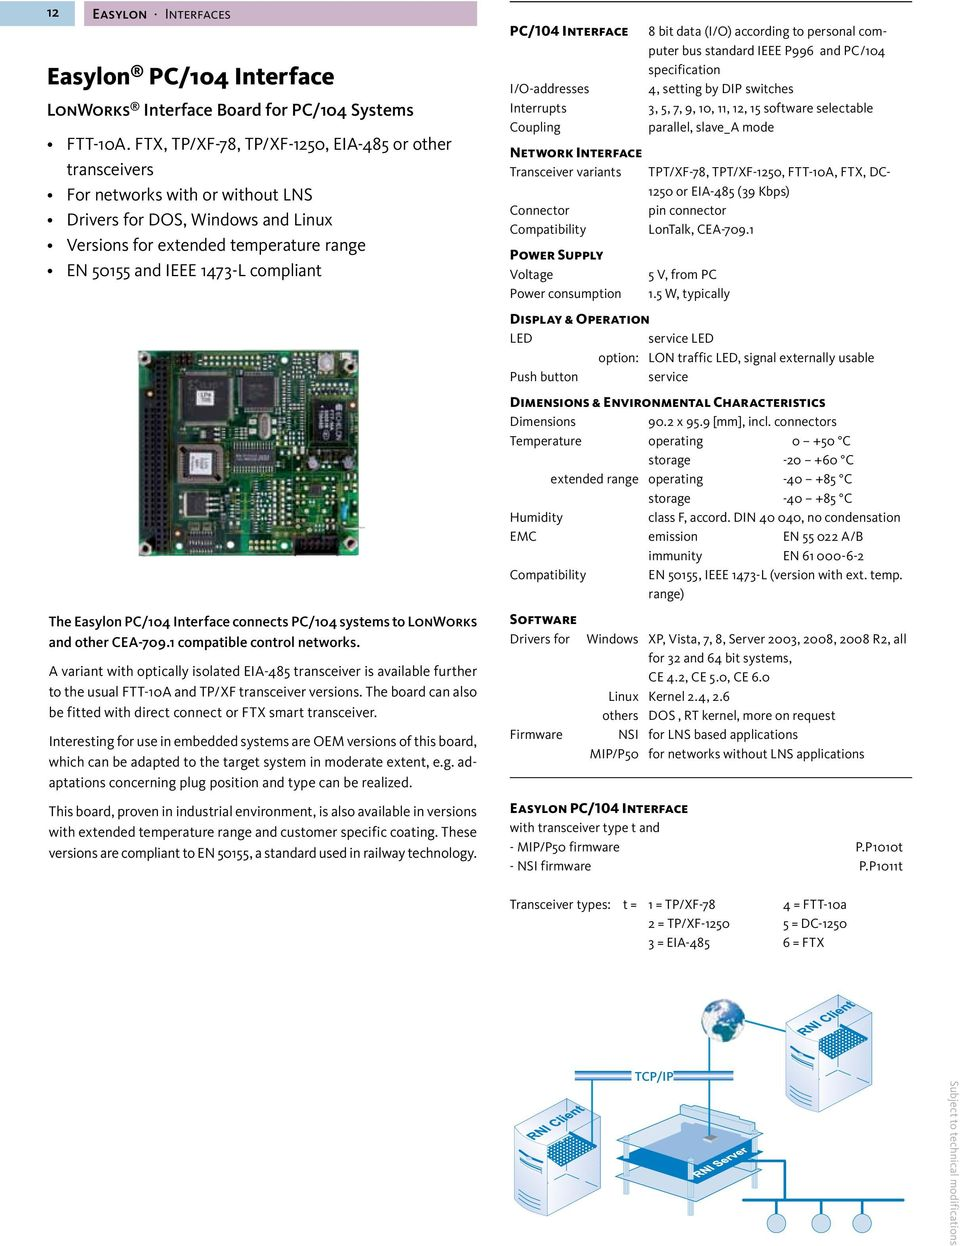 PC/104 Interface I/O-addresses Interrupts Coupling Network Interface Transceiver variants Connector Compatibility Power Supply Voltage Power consumption 8 bit data (I/O) according to personal